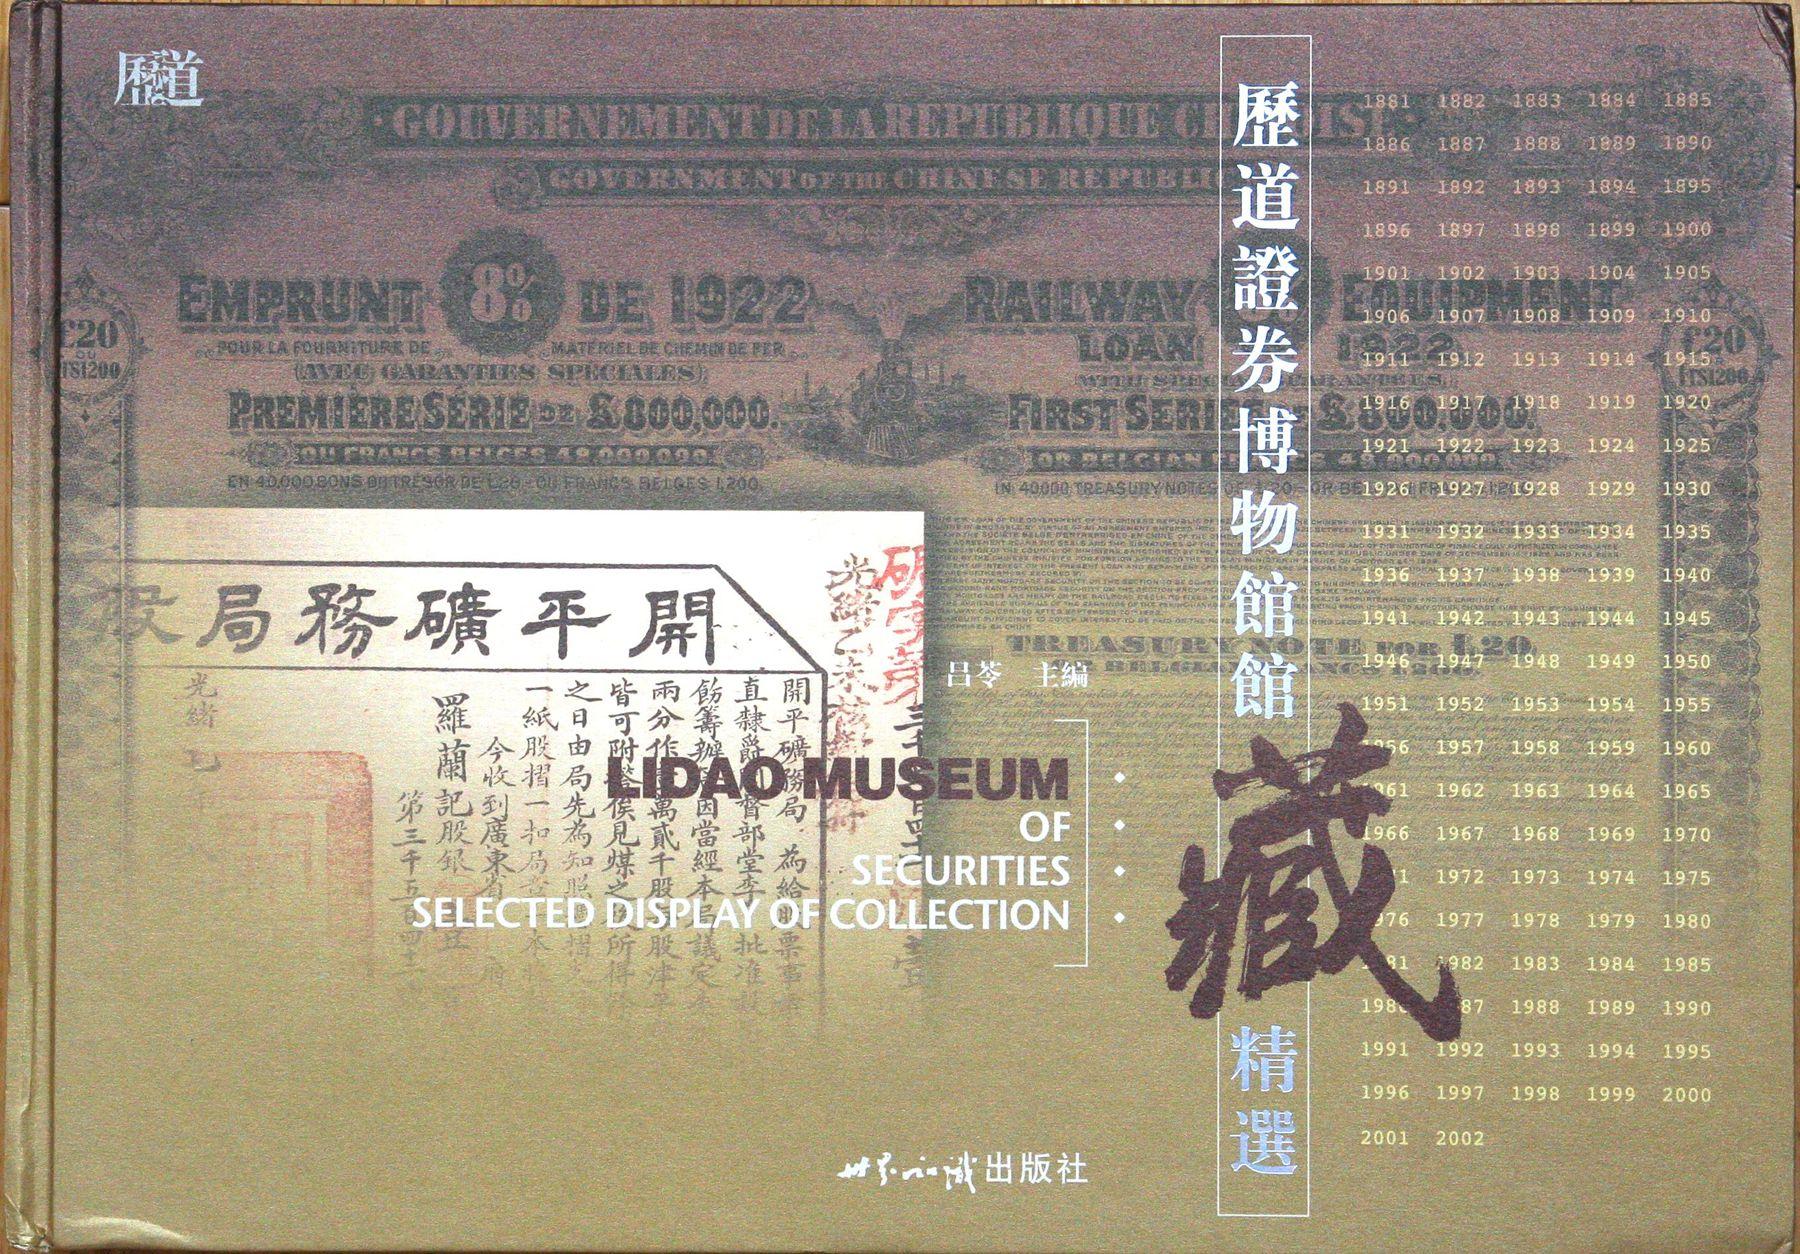 F2611, Lidao Museum of Securities, Selected Display of Collectio